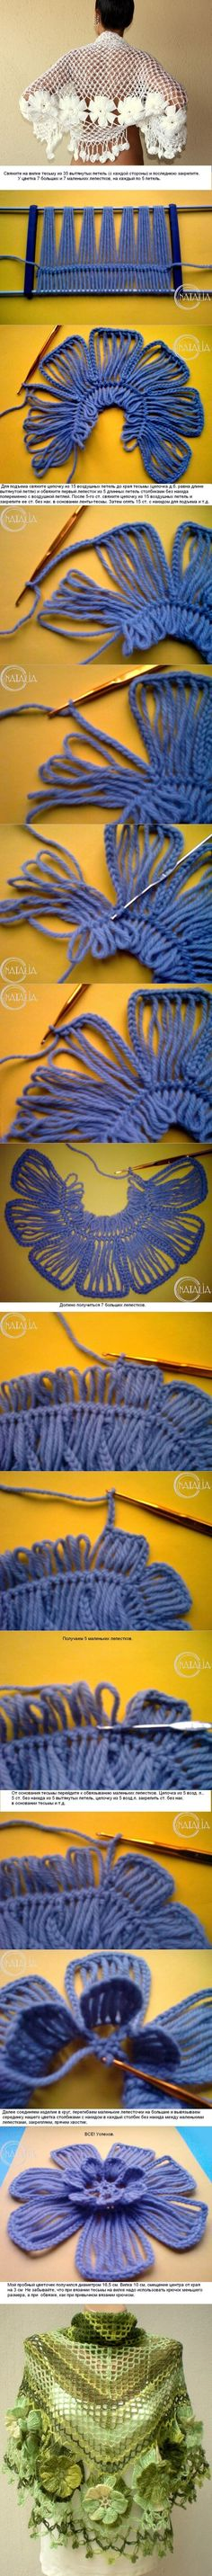 #Crochet #Flower #Tutorial - S | Crochet Flower